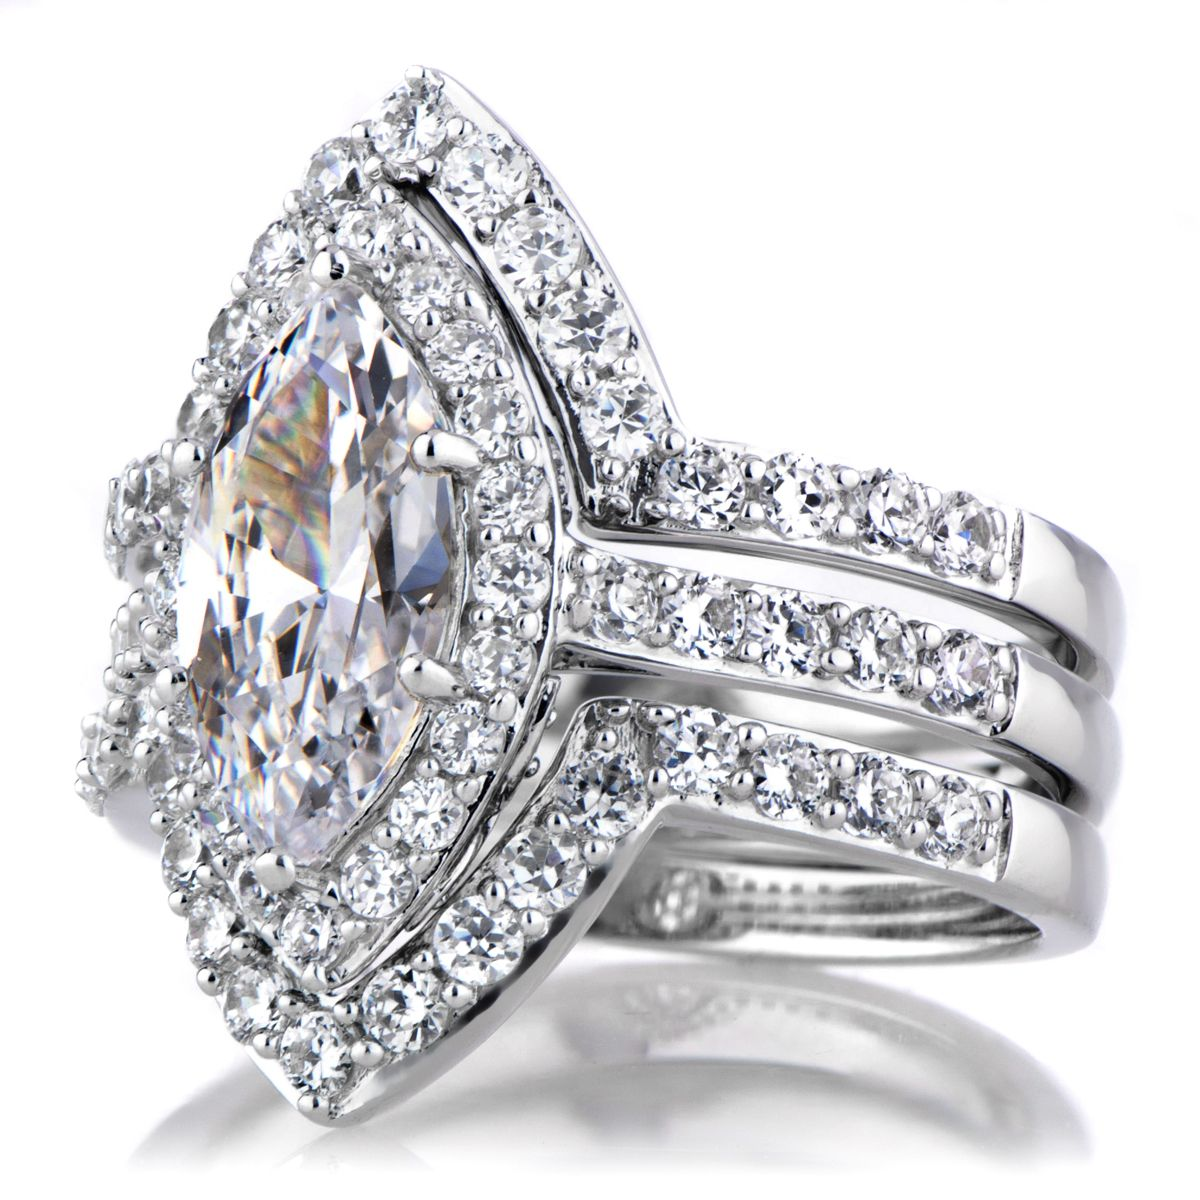 Padgett S Marquise Cut Cz Wedding Ring Set